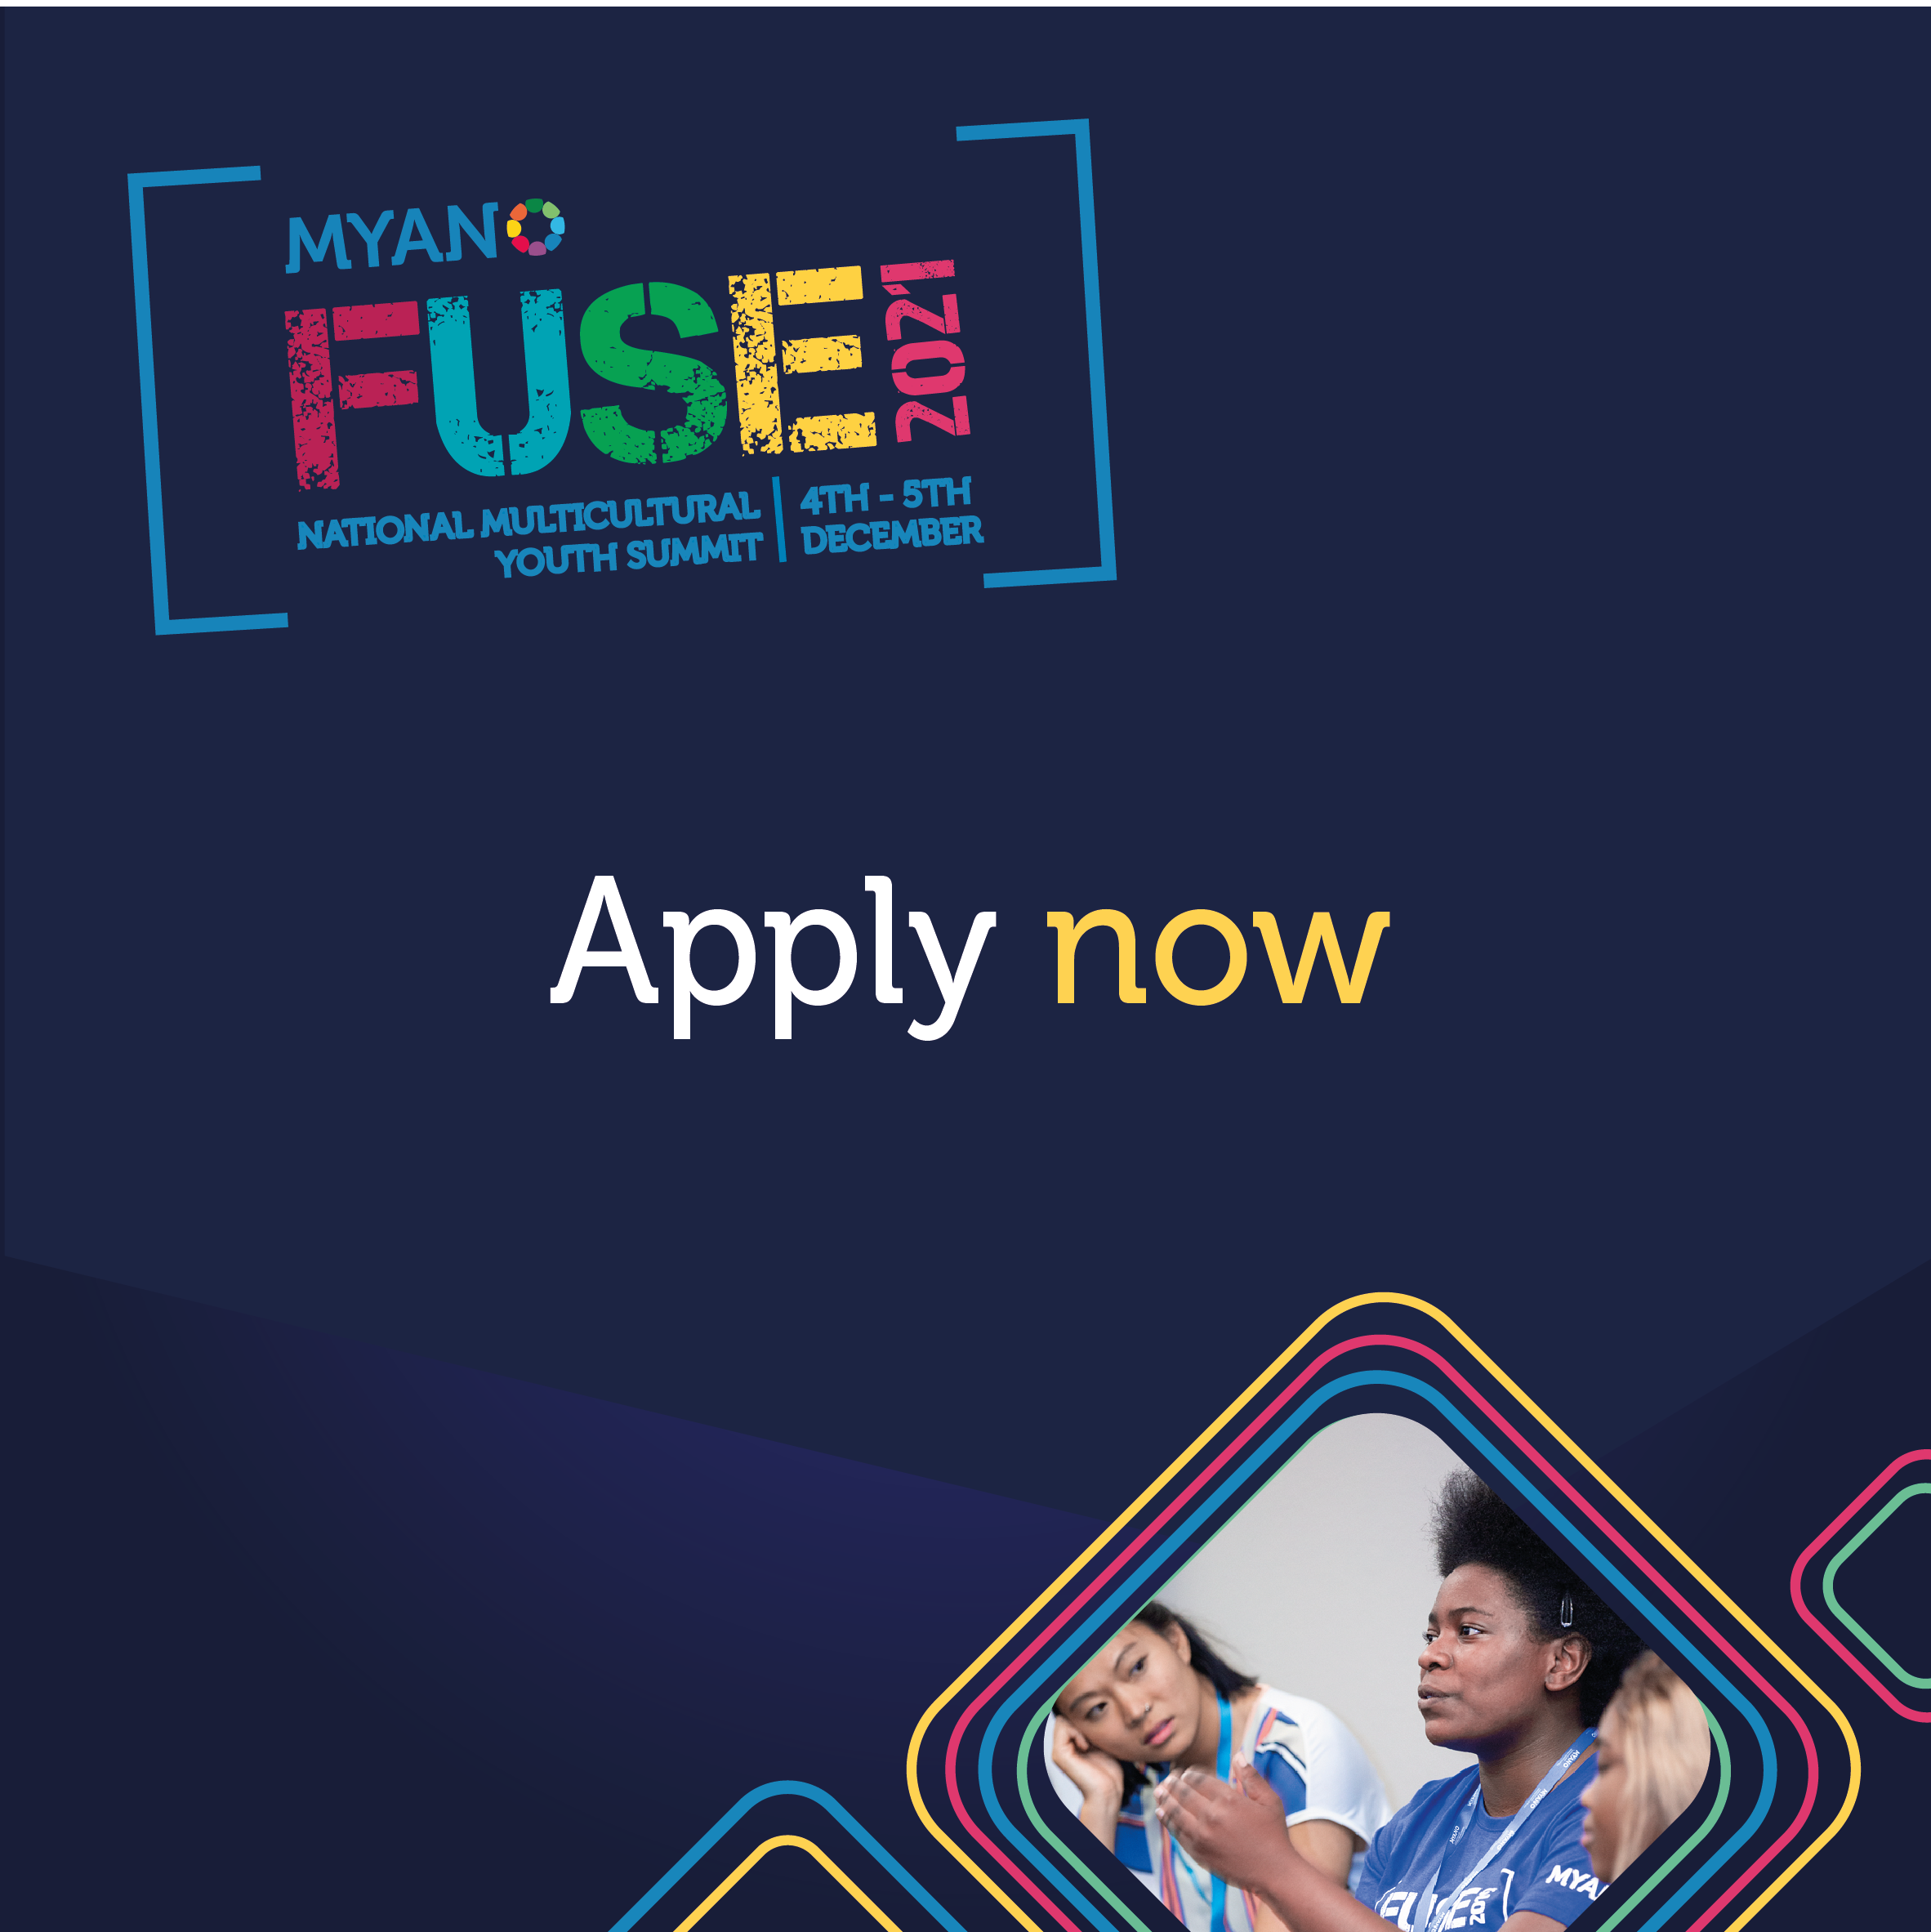 FUSE 2021 MYAN National Multicultural Youth Summit 4th - 5th December Apply Now